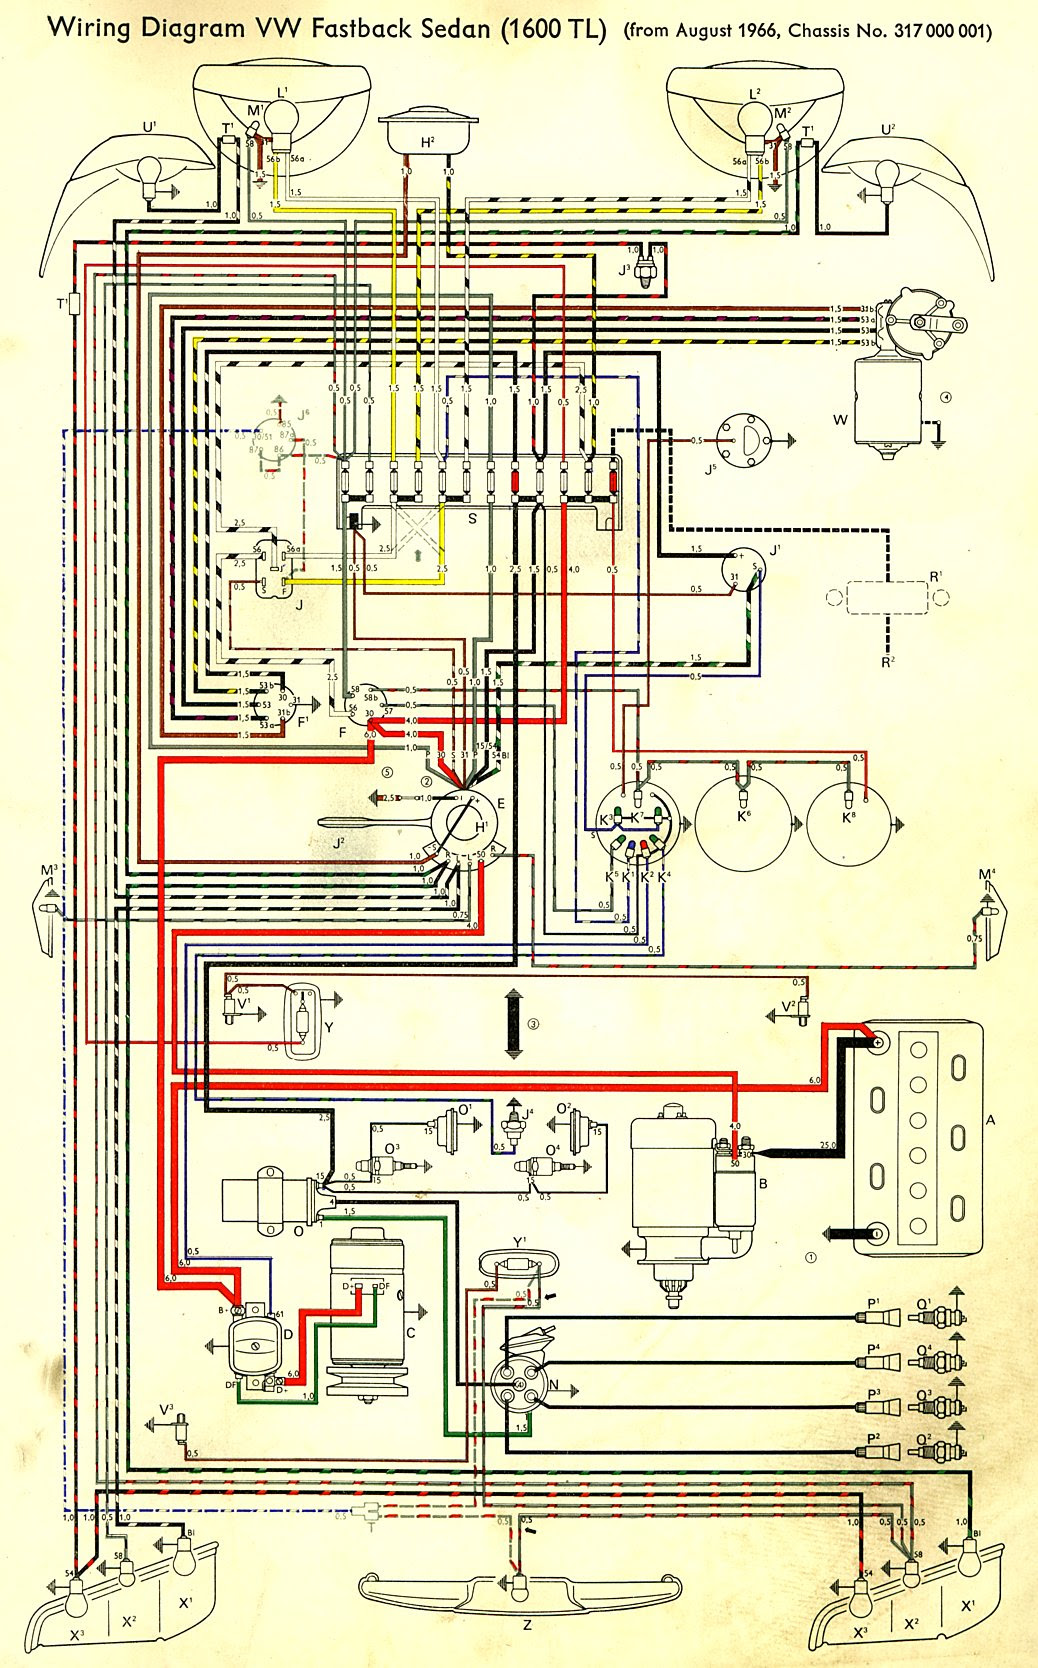 Jaguar Electrical Wiring Diagrams 1983 Chevy Truck Fuse Box For Wiring Diagram Schematics